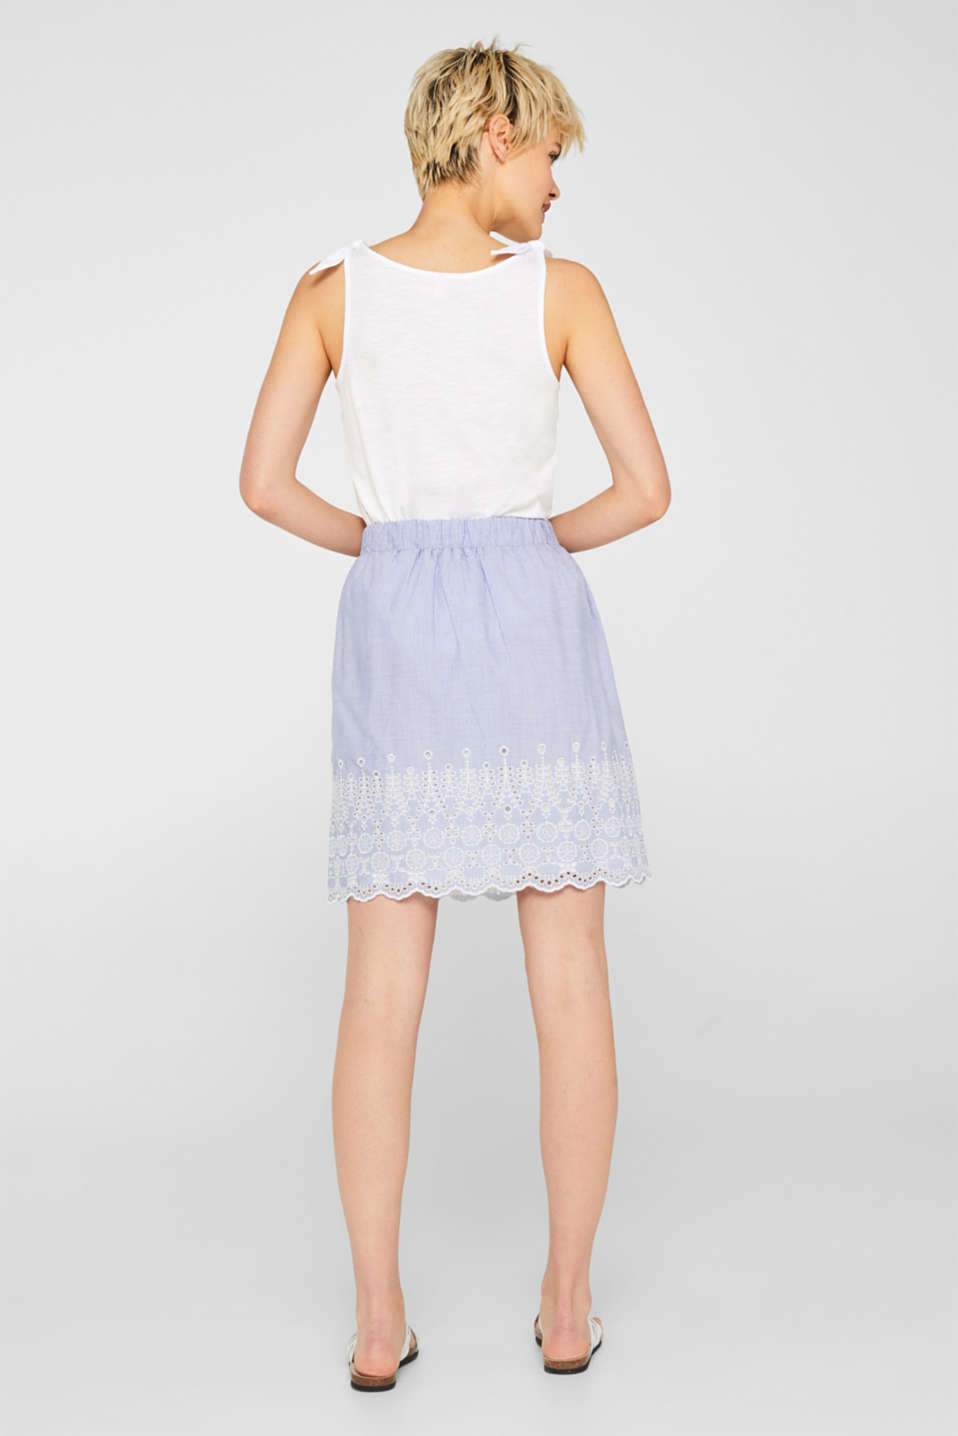 Broderie anglaise detail skirt, 100% cotton, LIGHT BLUE, detail image number 3